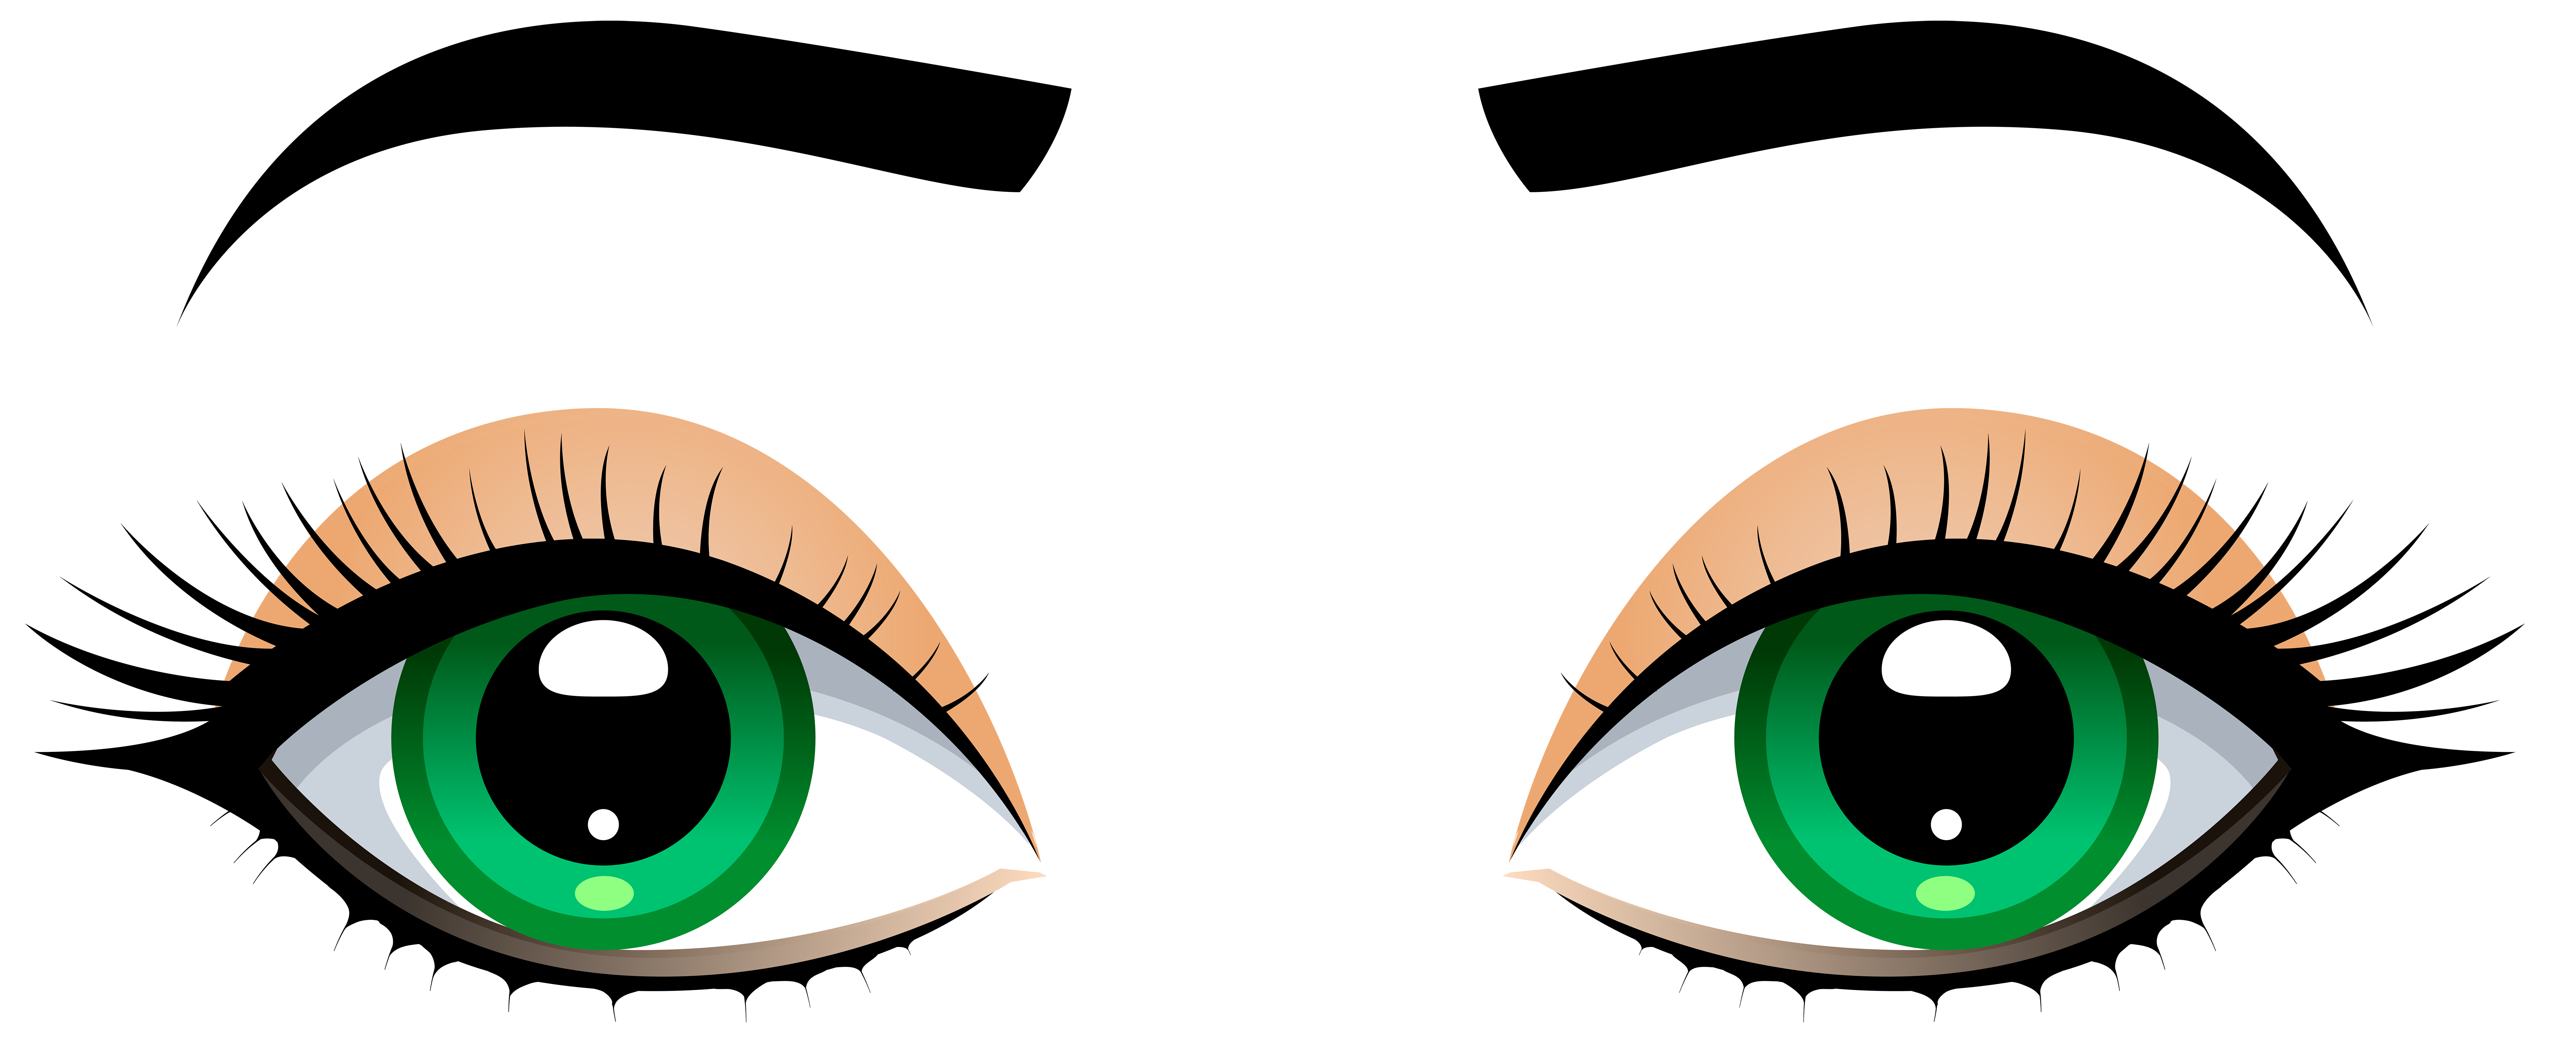 8000x3239 Female Eyes With Eyebrows Png Clip Art